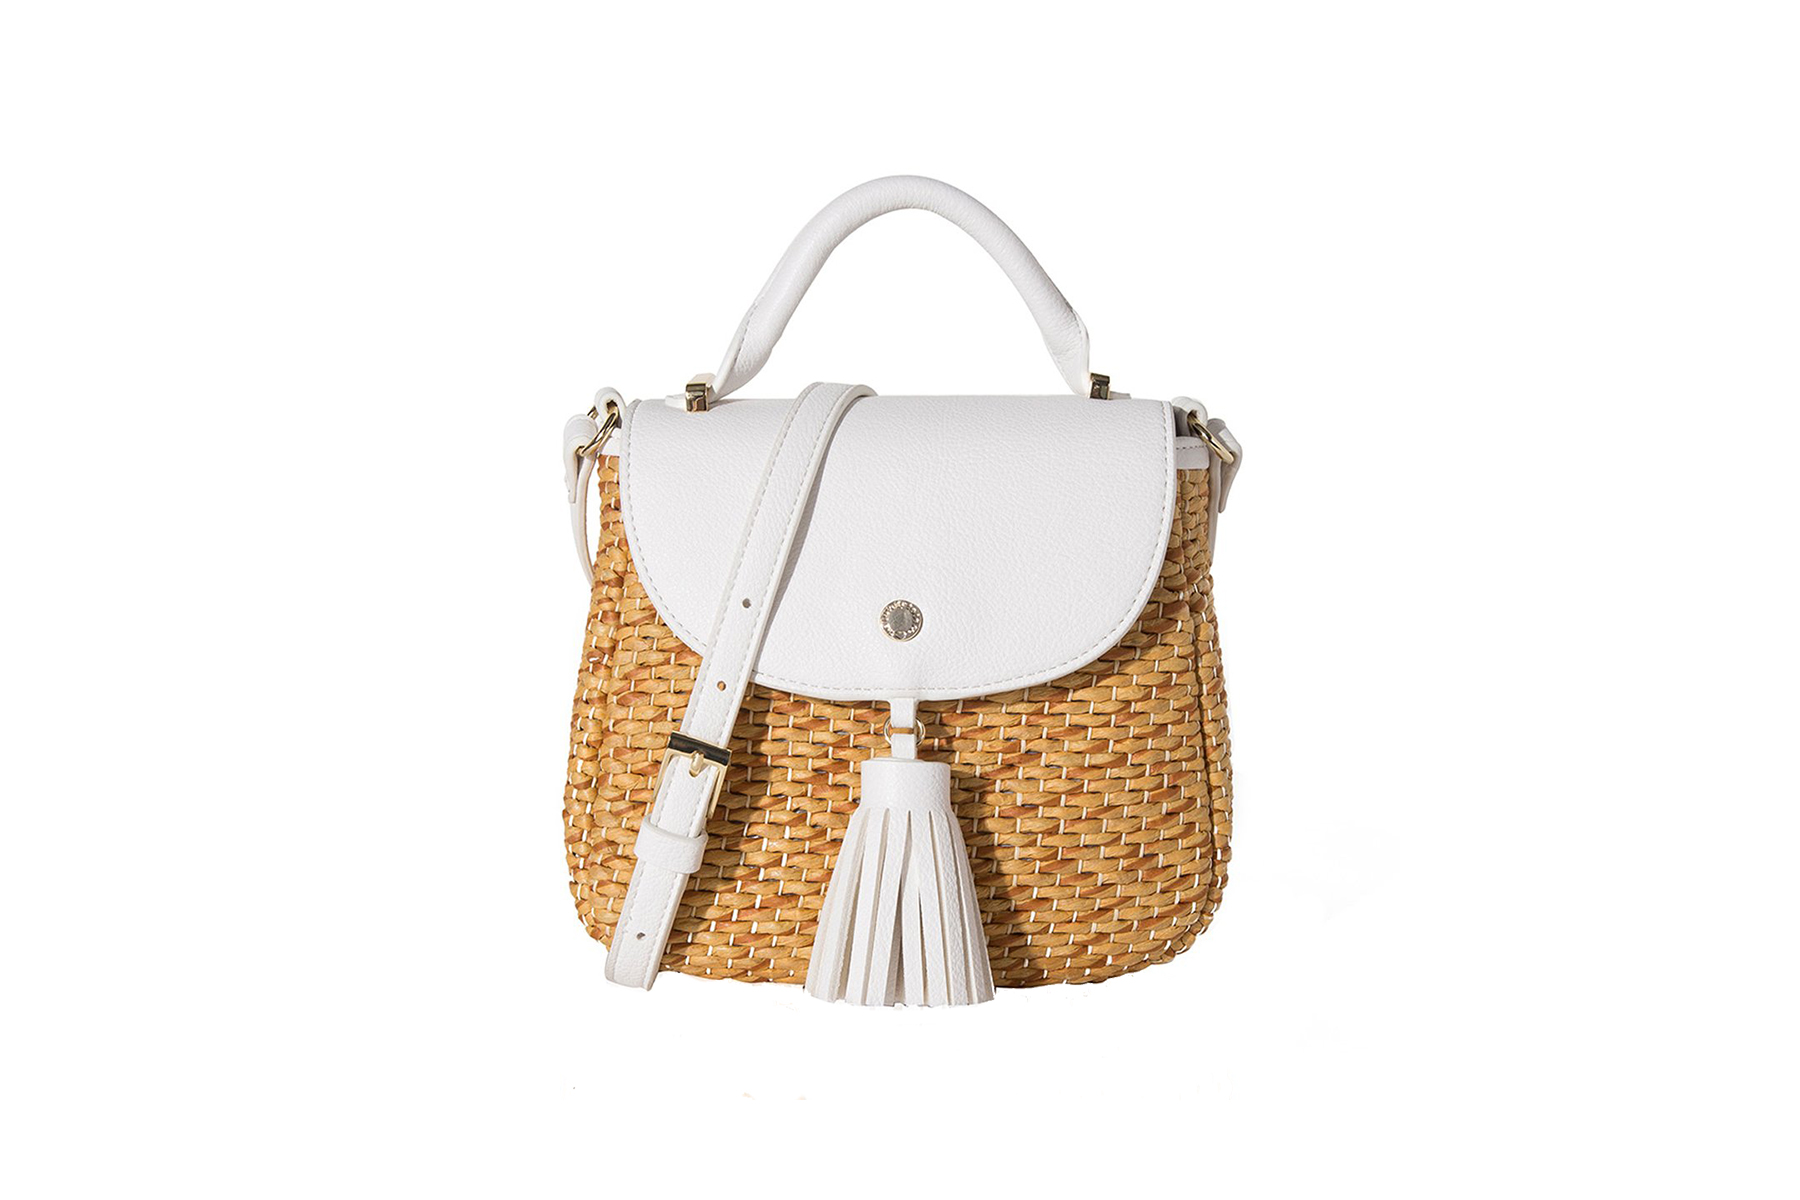 The Lovely Tote Co. Straw Crossbody